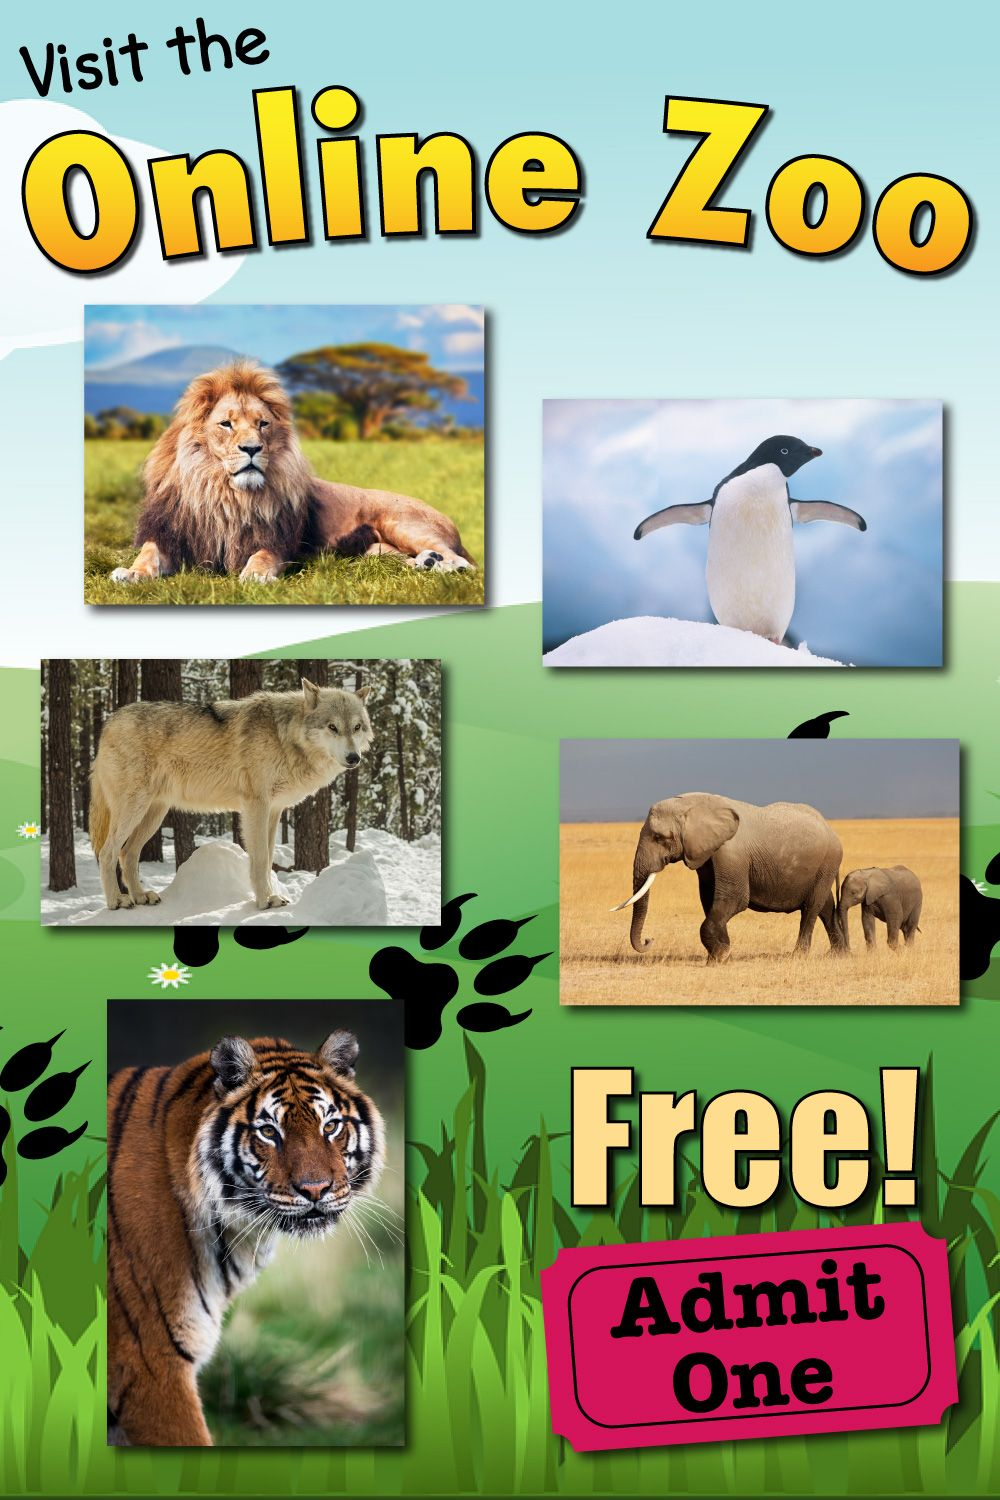 Online Zoo With Pictures Facts Videos A Virtual Zoo For Kids Adults Animal Pictures Animal Facts For Kids Zoo Animals